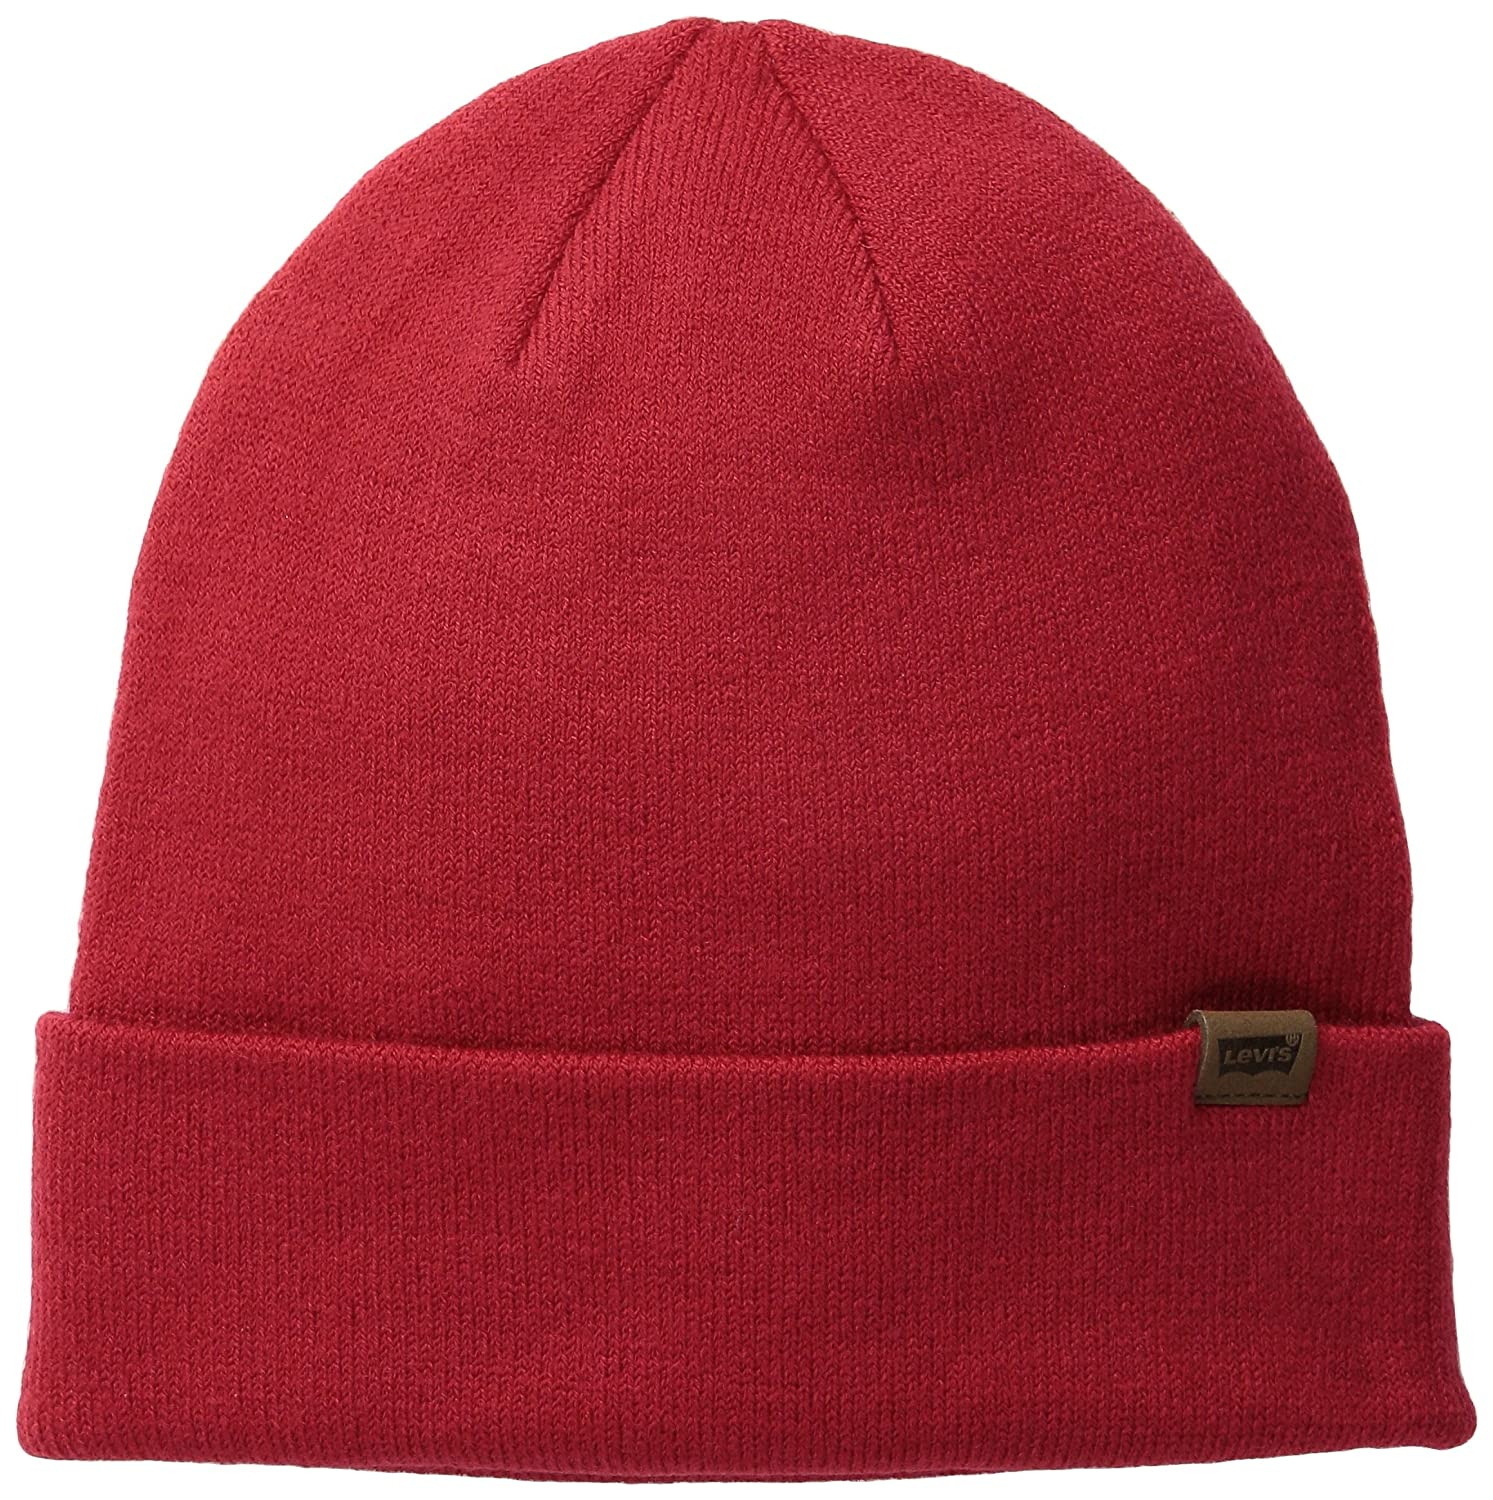 4d06e5a76dbe4 Levi s Mens Core Flat Turn Up Beanie Hat Red One Size  Amazon.co.uk   Clothing